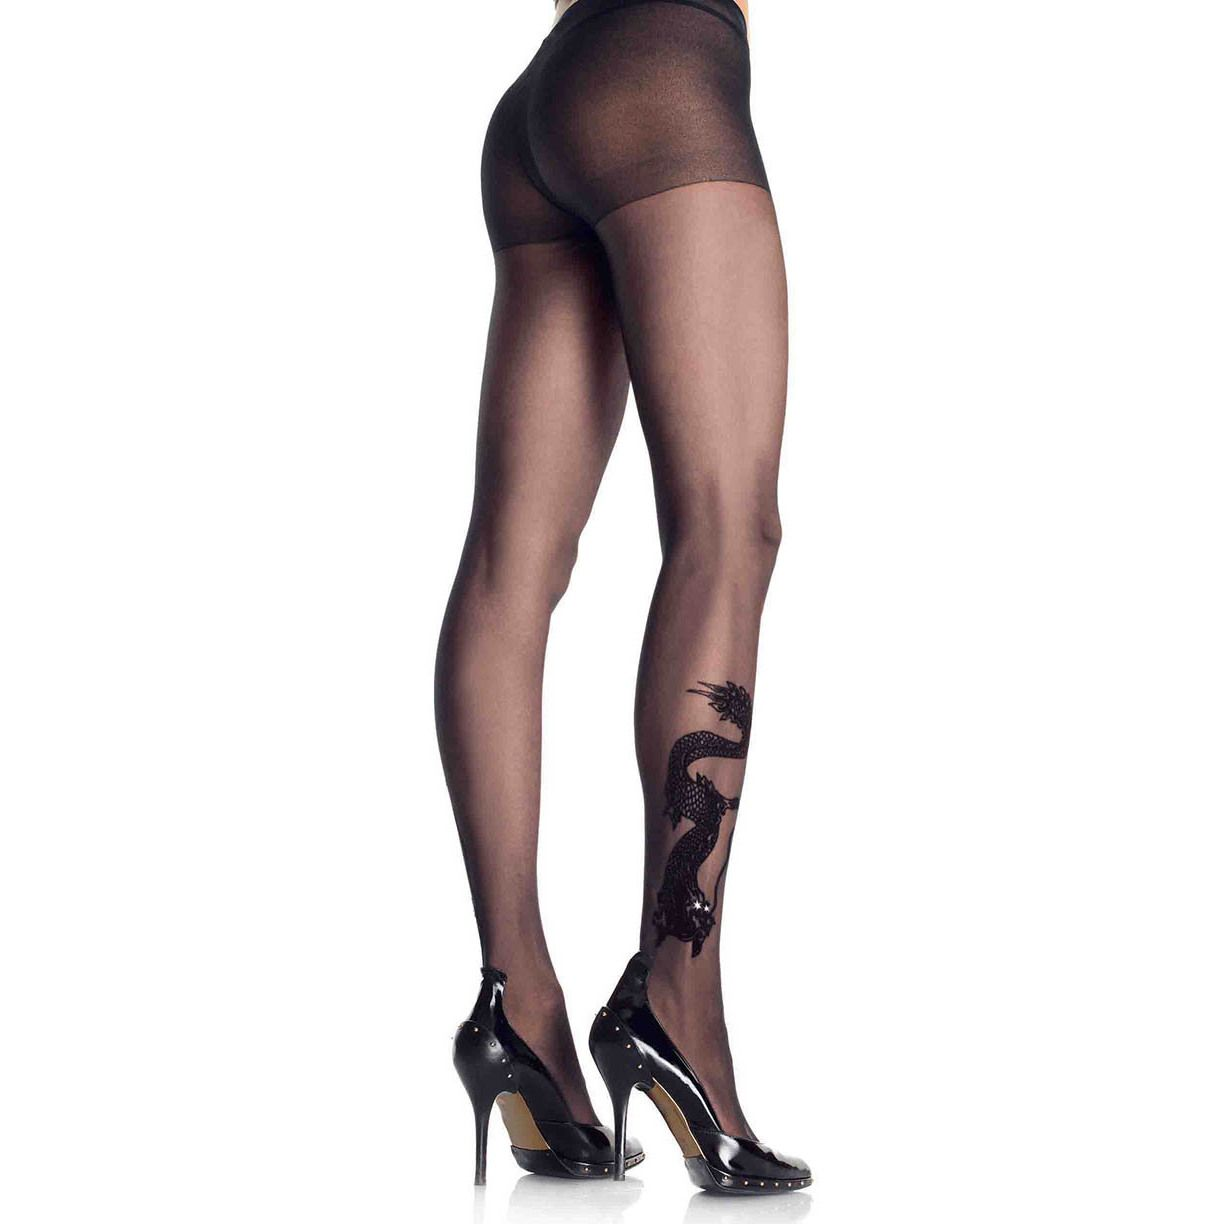 Love interracial Online pantyhose for